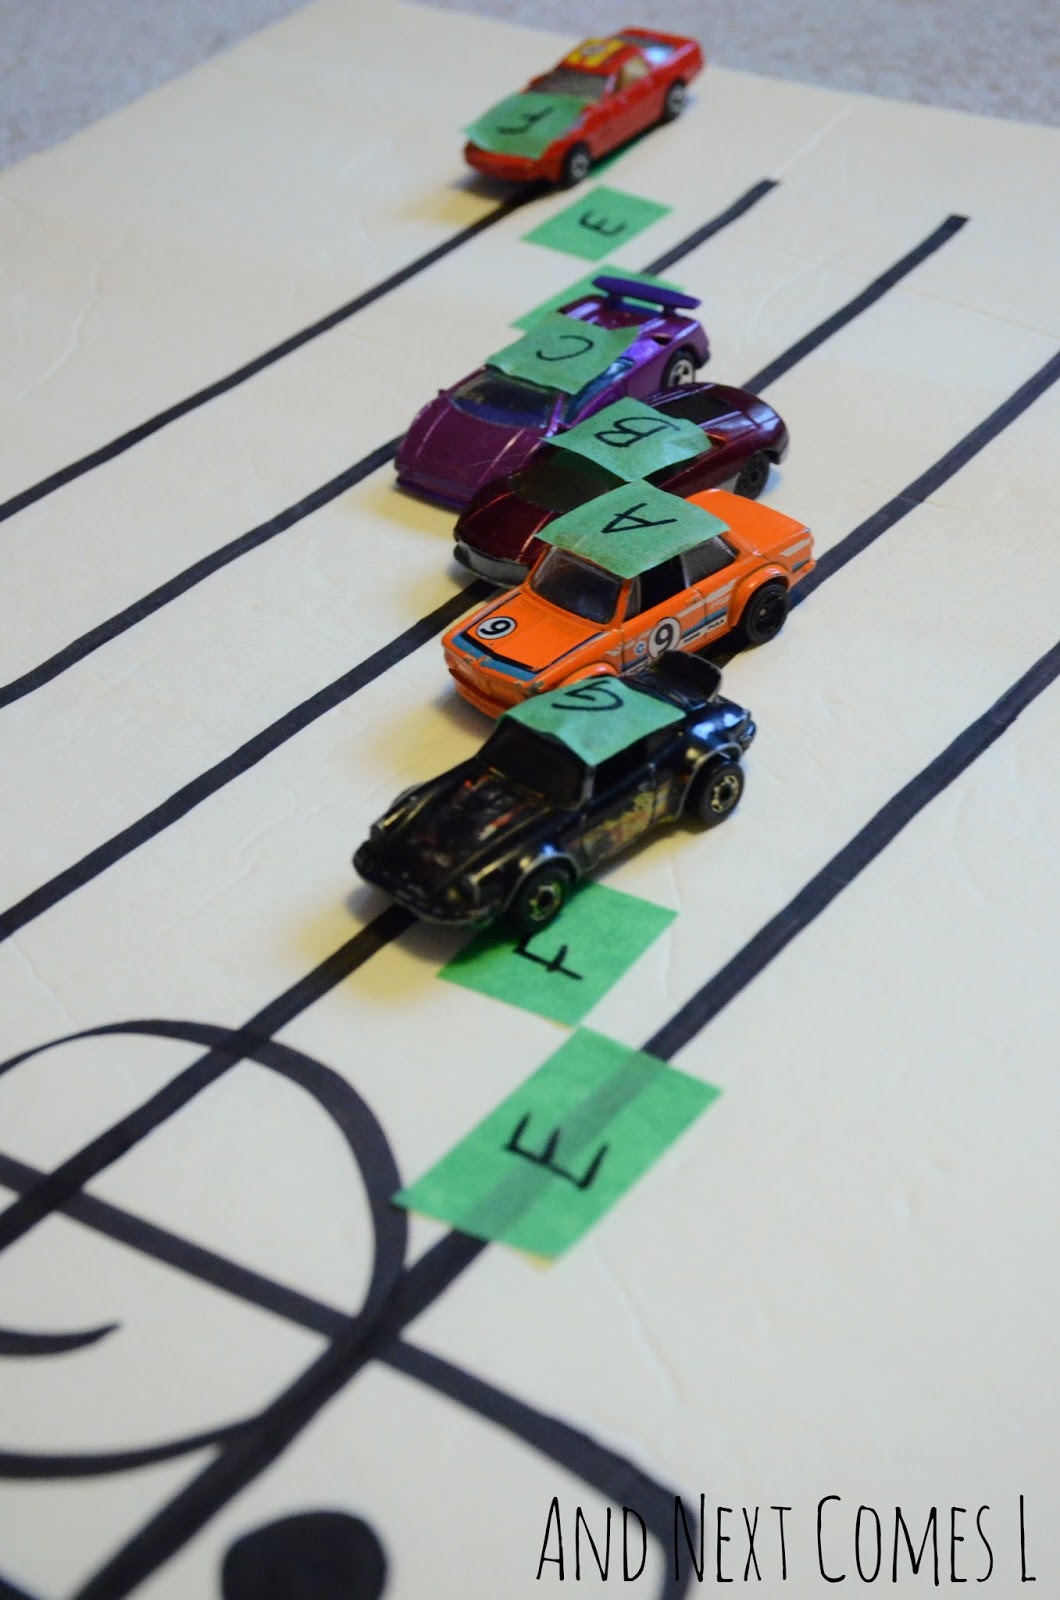 music theory game for kids learning about grand staff using cars from and next comes